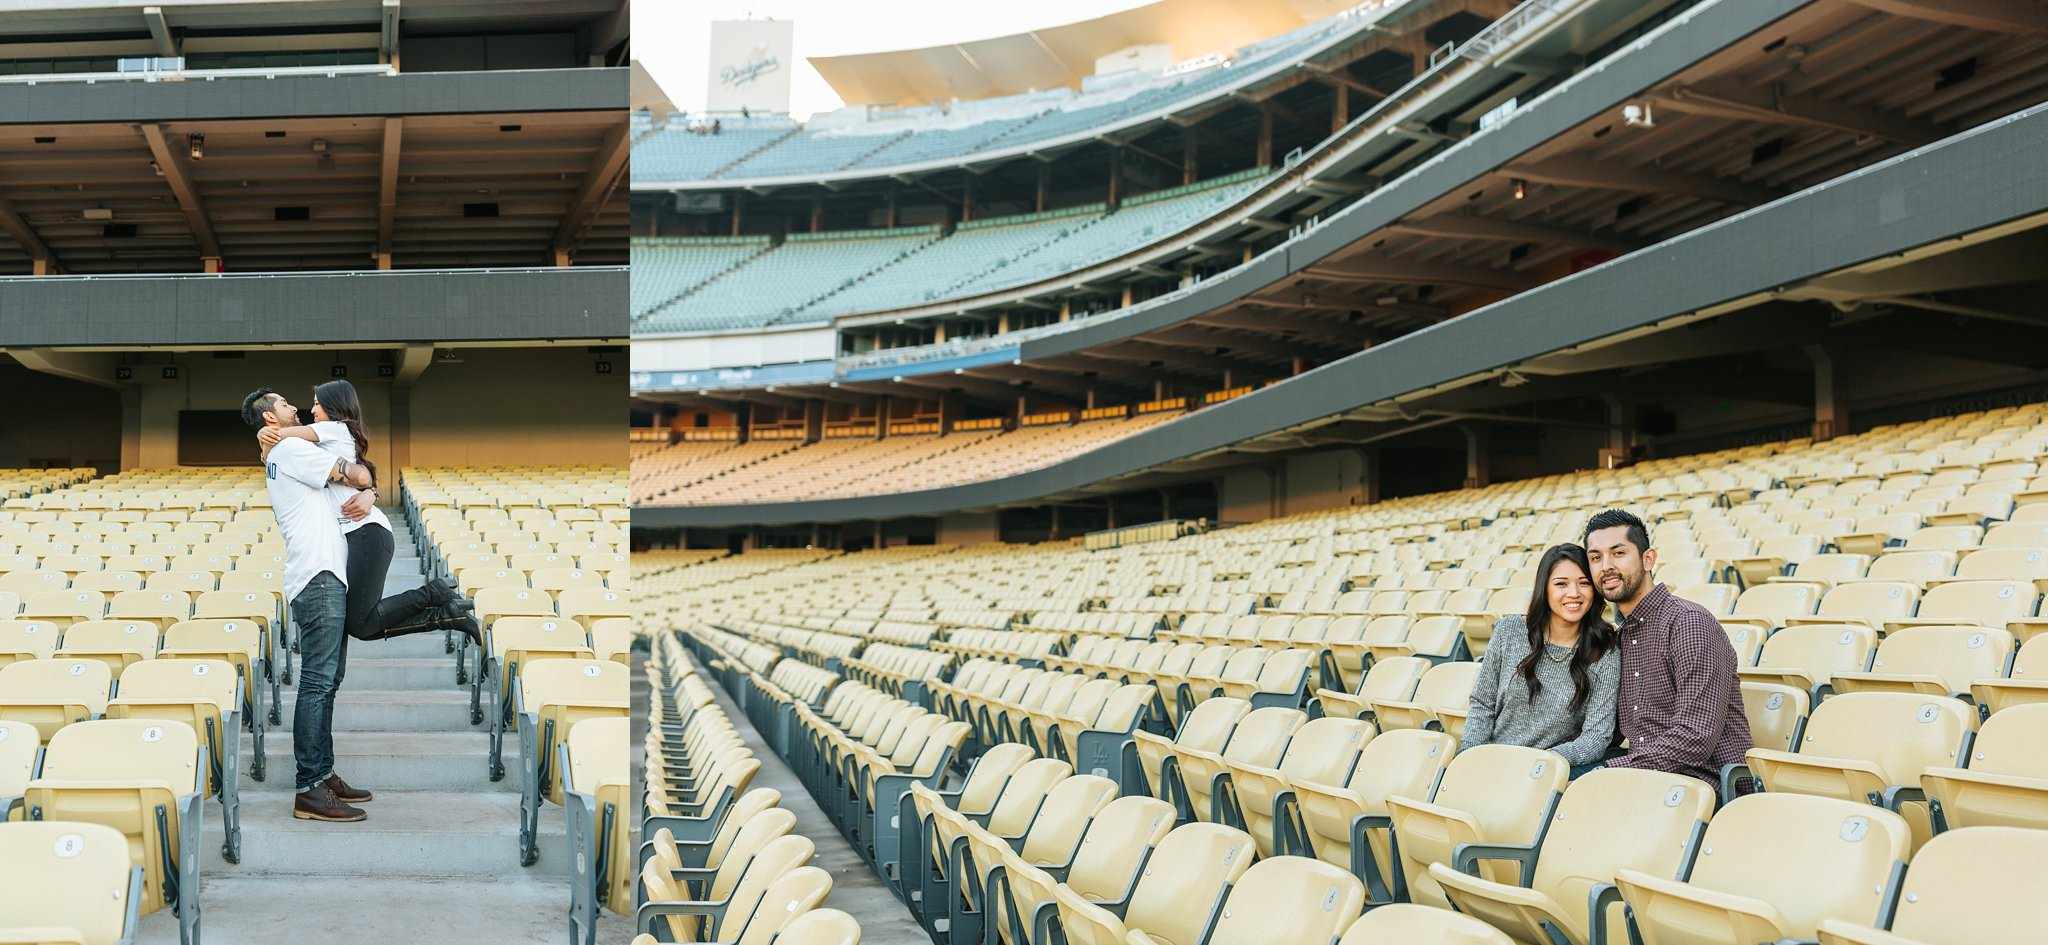 It's time for Dodger baseball - engagement photos at dodger stadium - http://brittneyhannonphotography.com